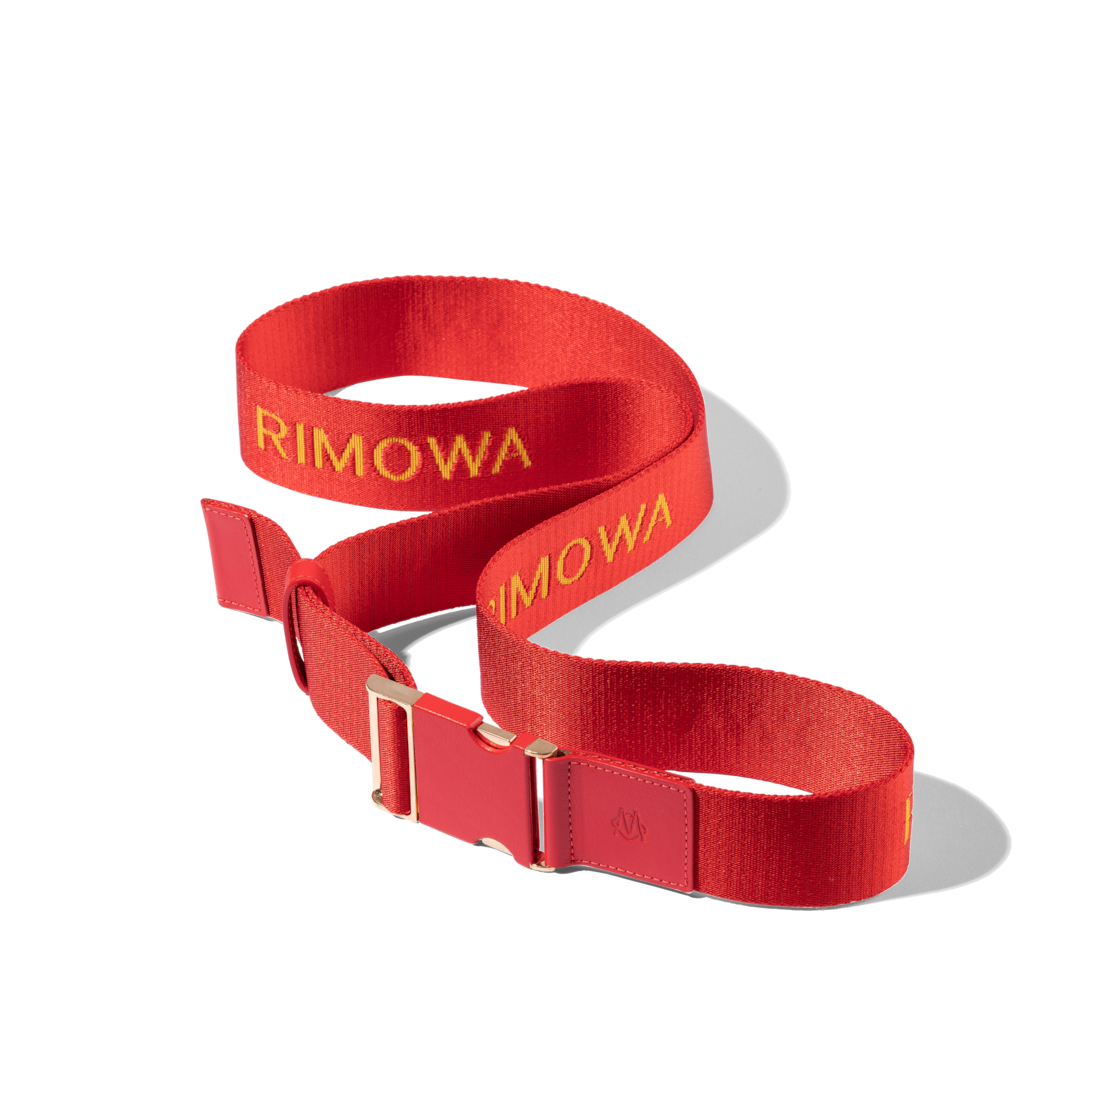 Lunar New Year Belt S